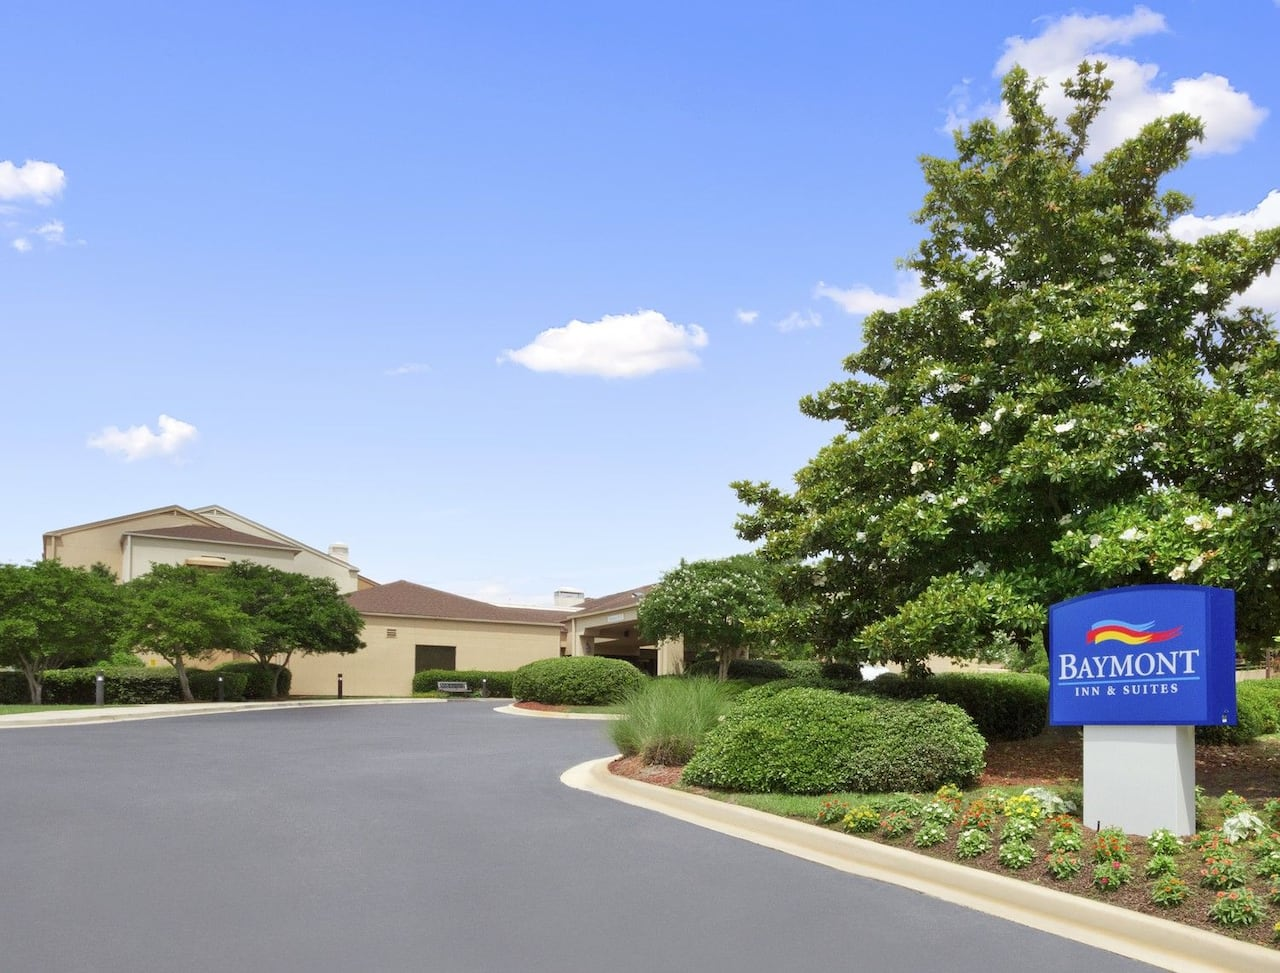 Baymont Inn & Suites Columbia Northwest in West Columbia, South Carolina